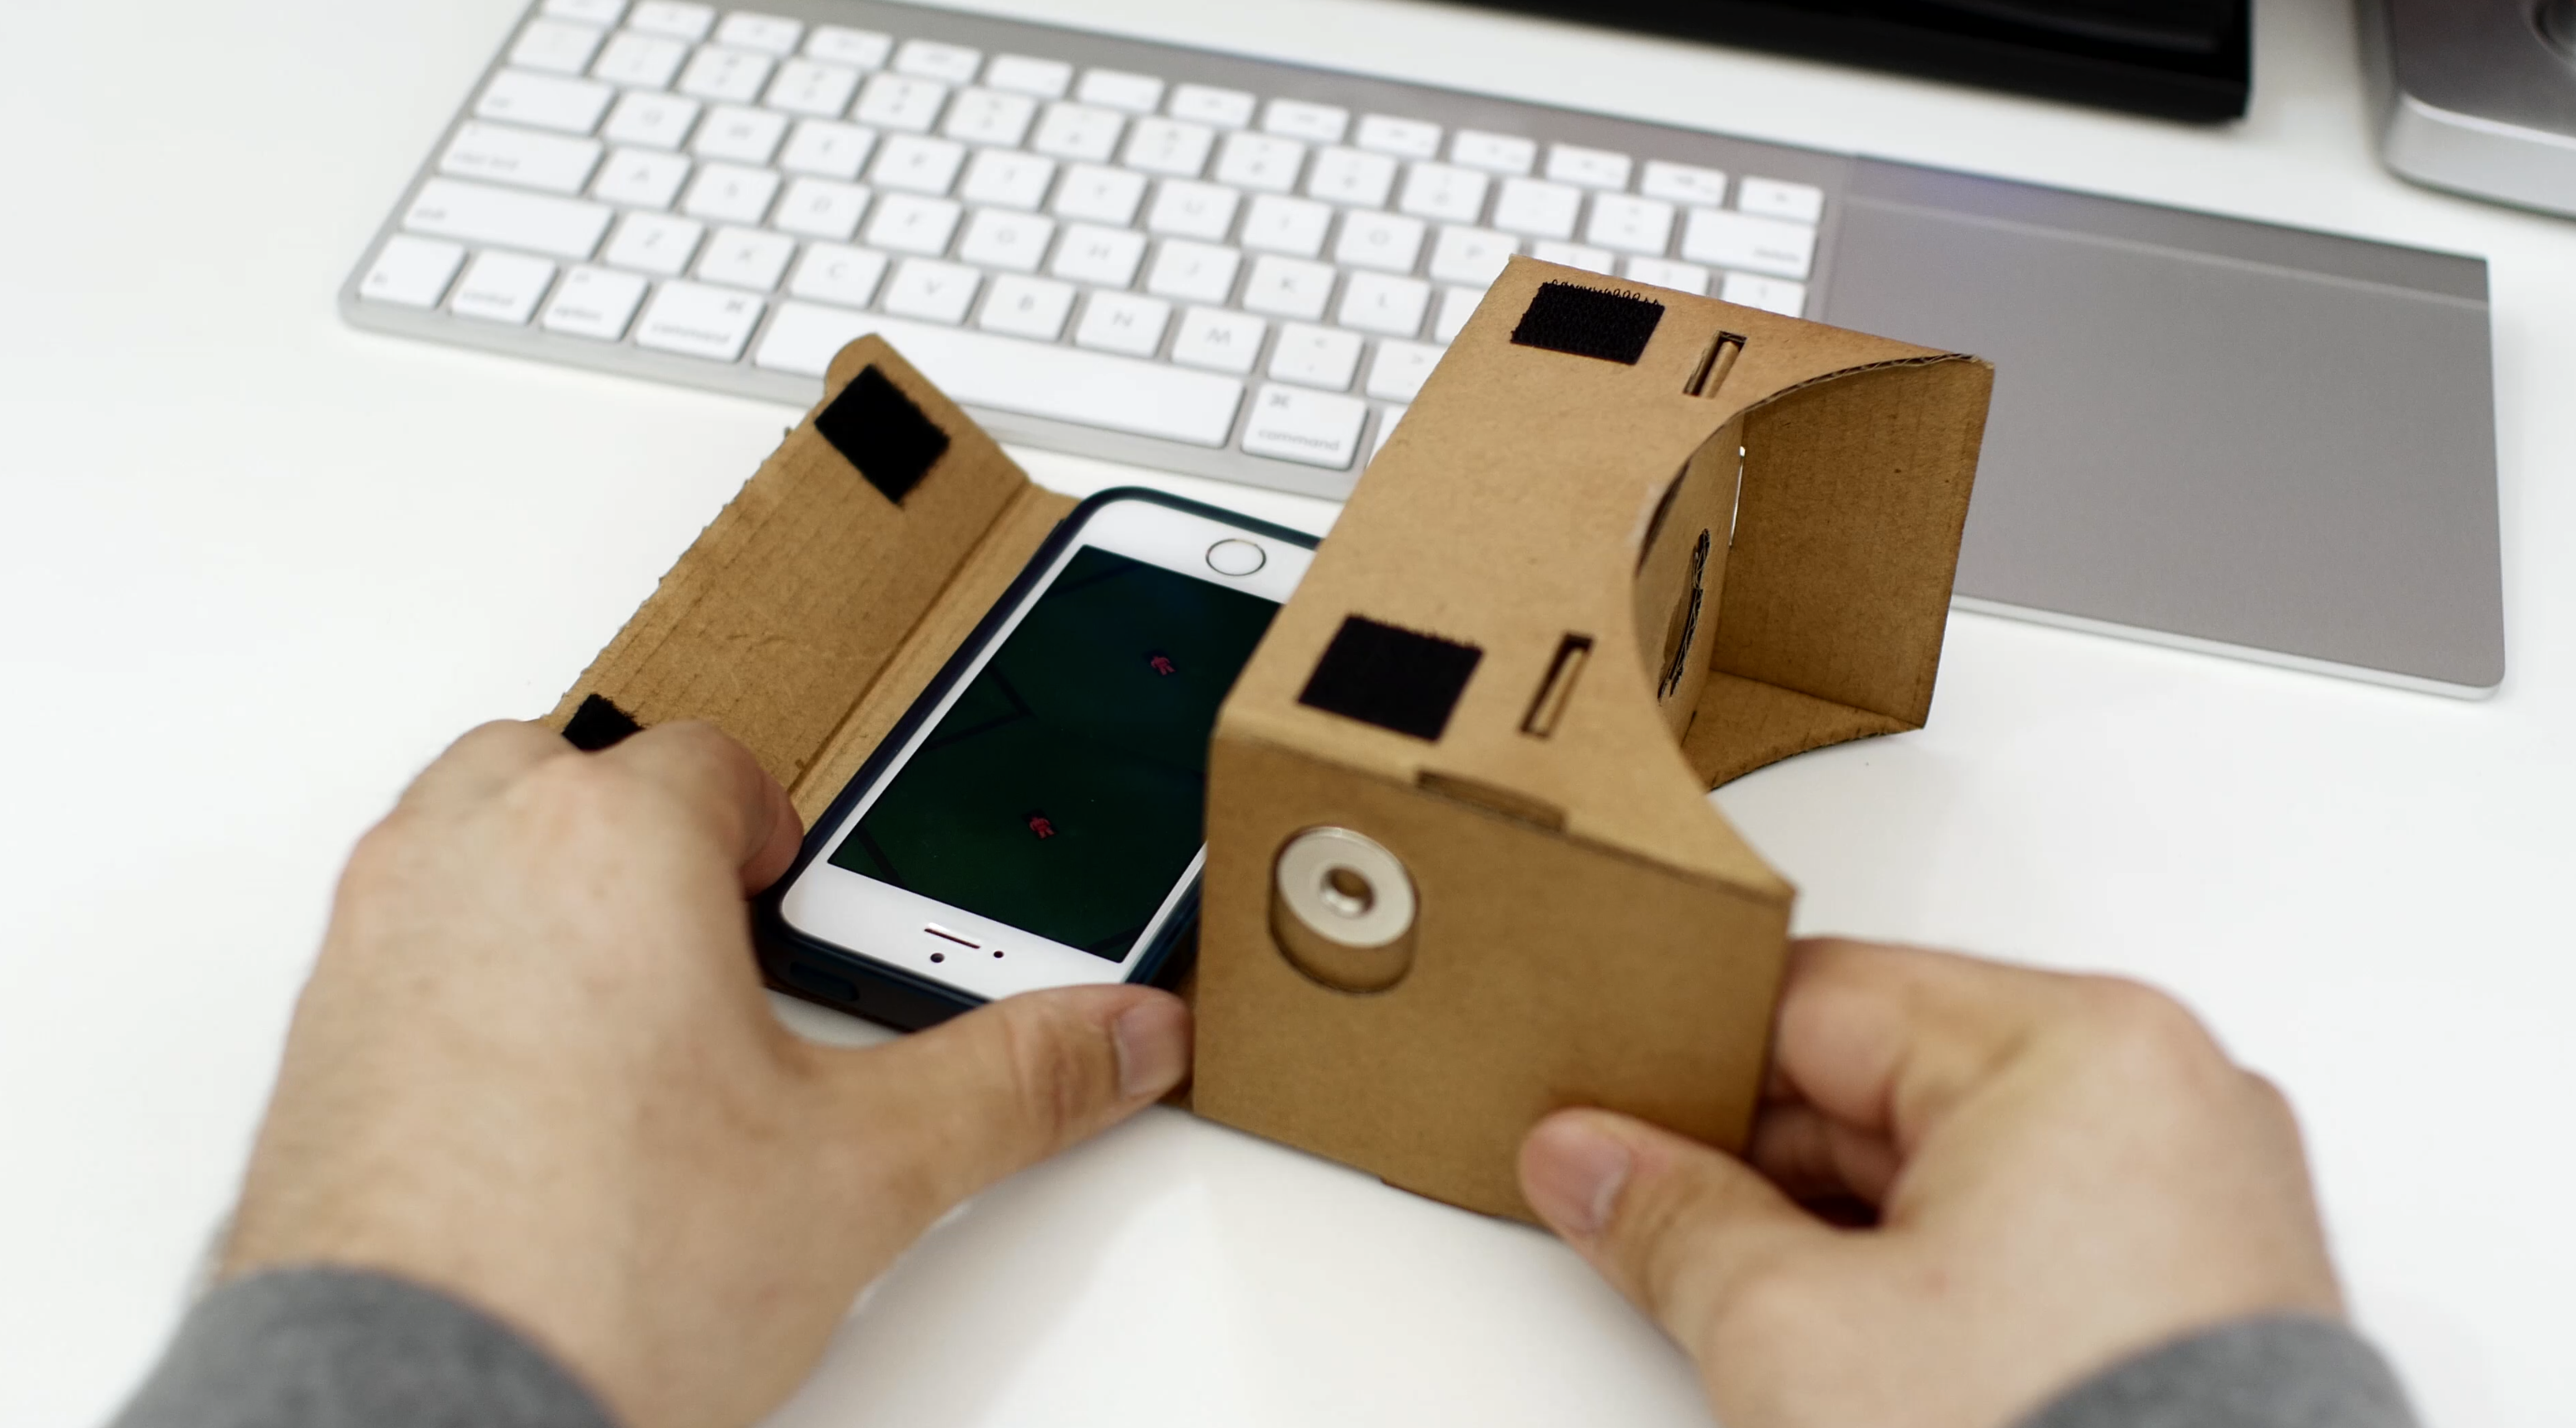 Google How to Use Cardboard Awesome Cardboard VR Headsets